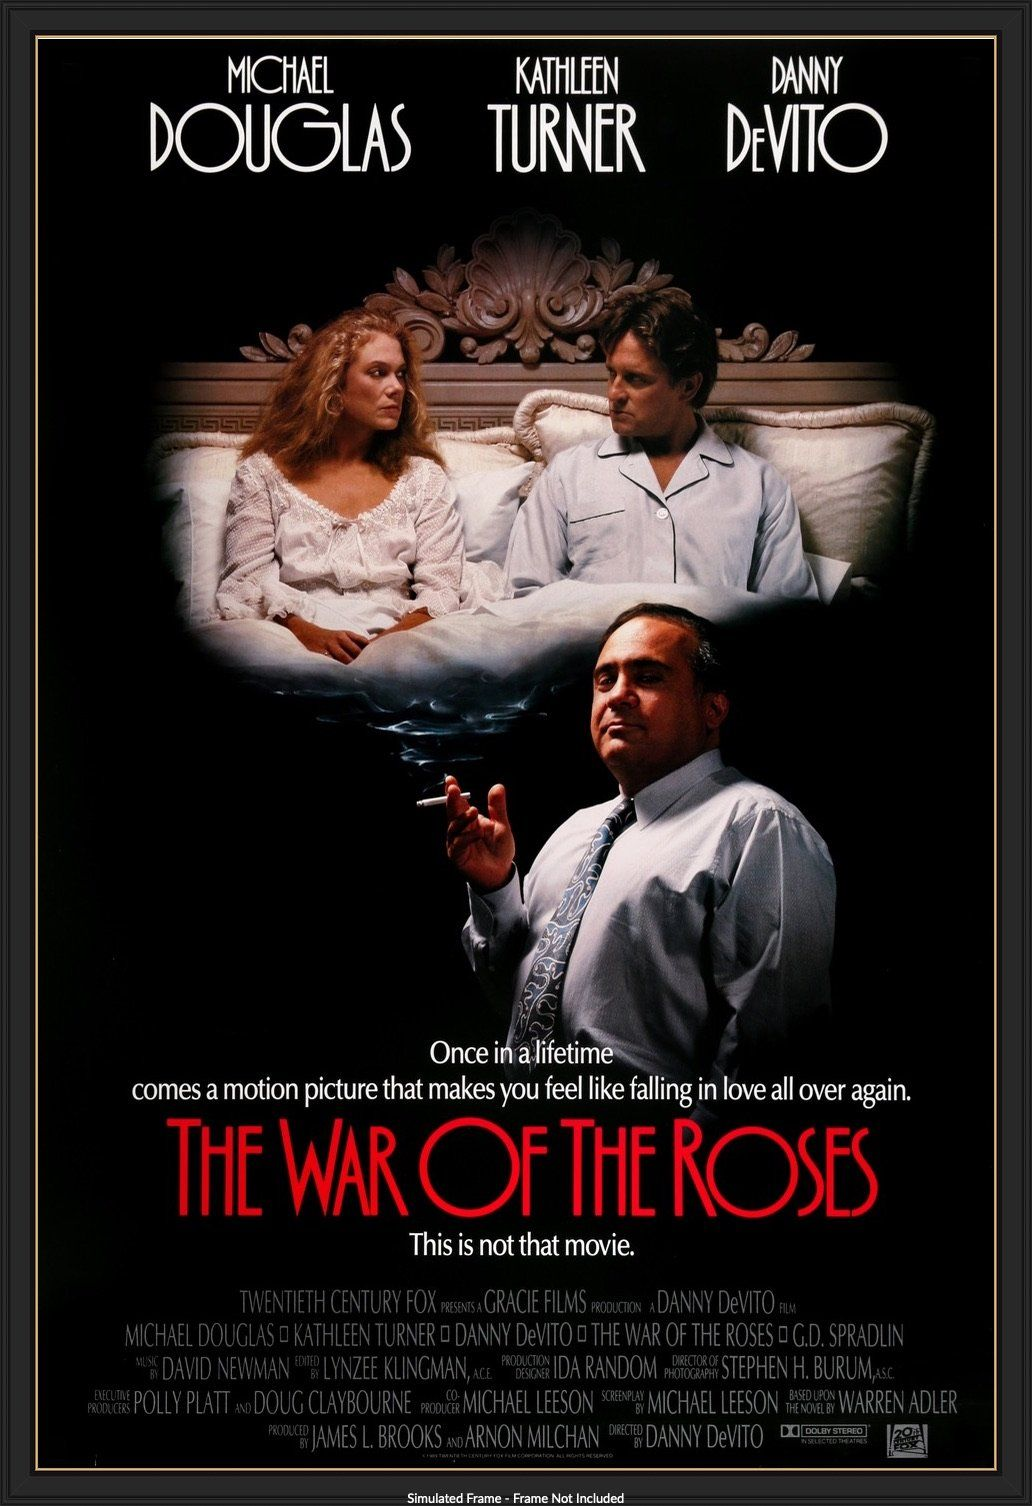 War Of The Roses 1989 In 2021 Wars Of The Roses Comedy Films Love Movie